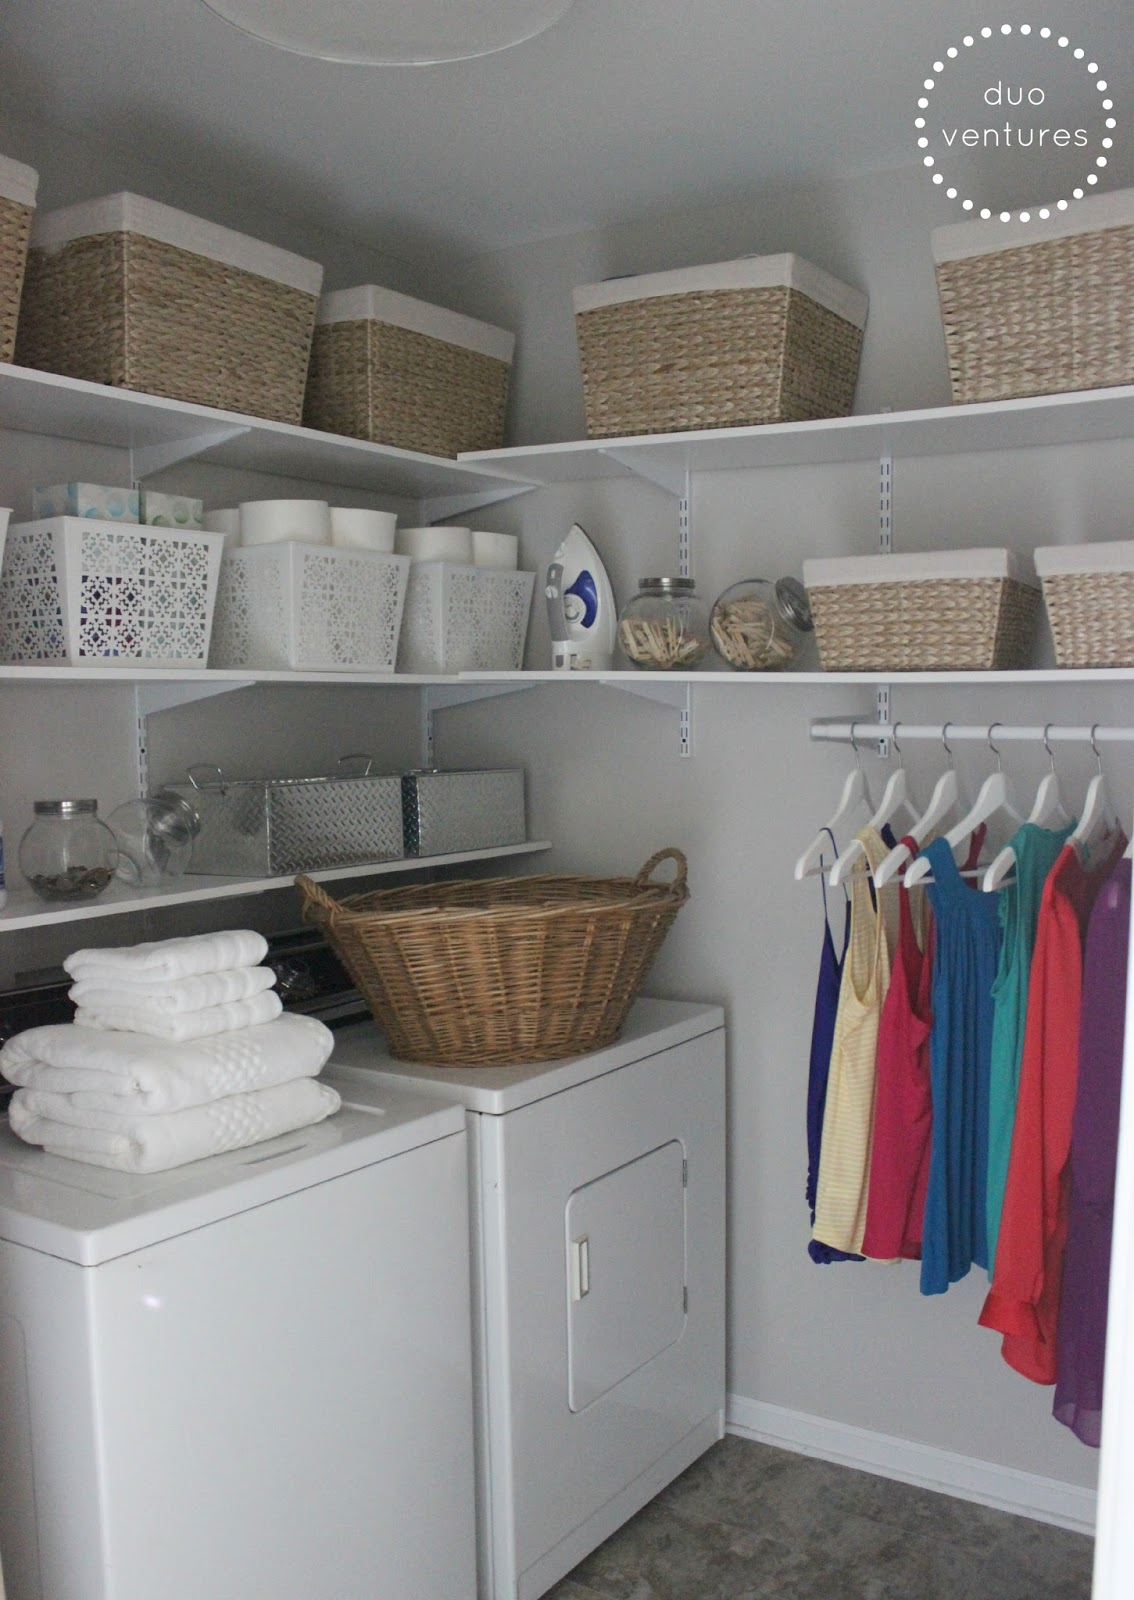 Duo ventures laundry room makeover Laundry room storage